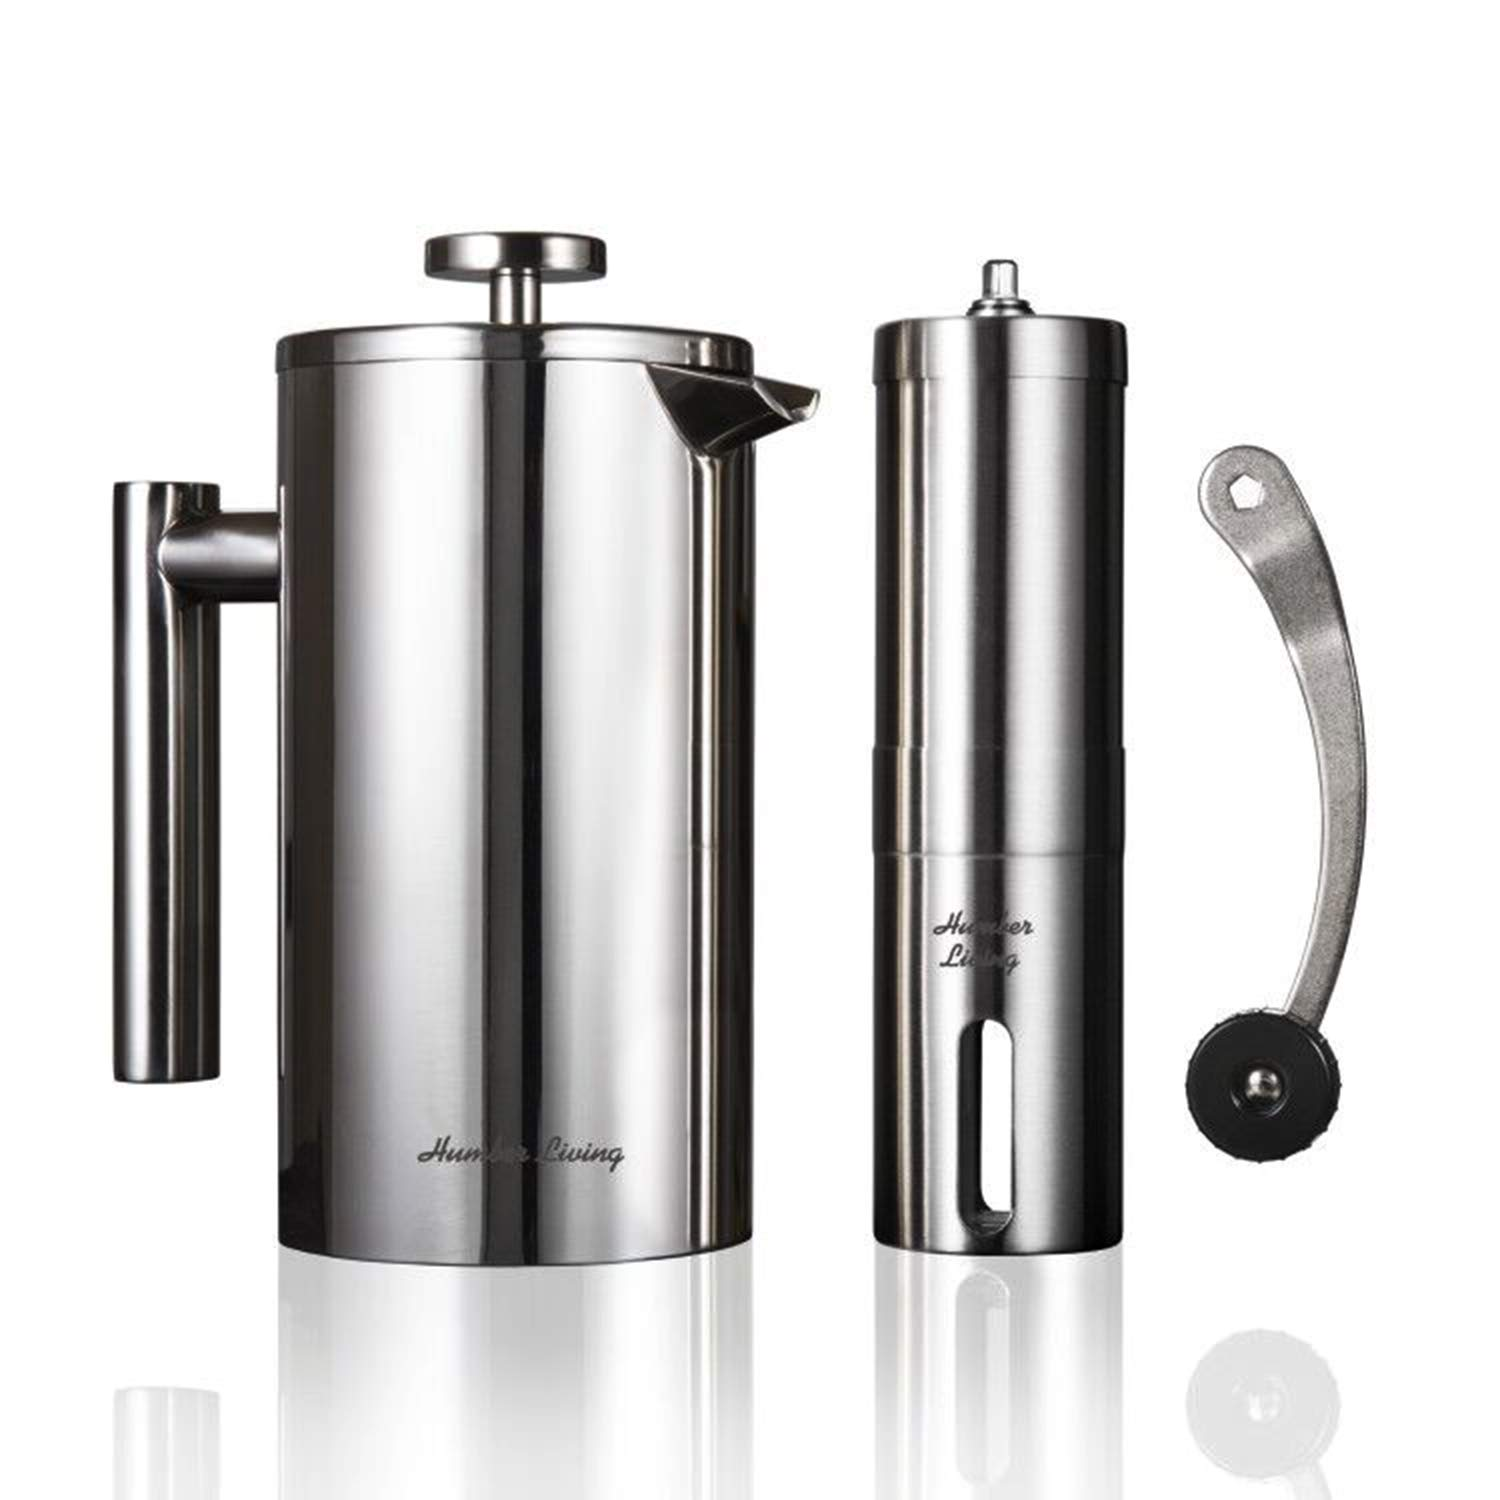 French Press Coffee Maker Stainless Steel Double Wall Insulated and Manual Coffee Grinder Set Ceramic Burr Mill by Humber Living